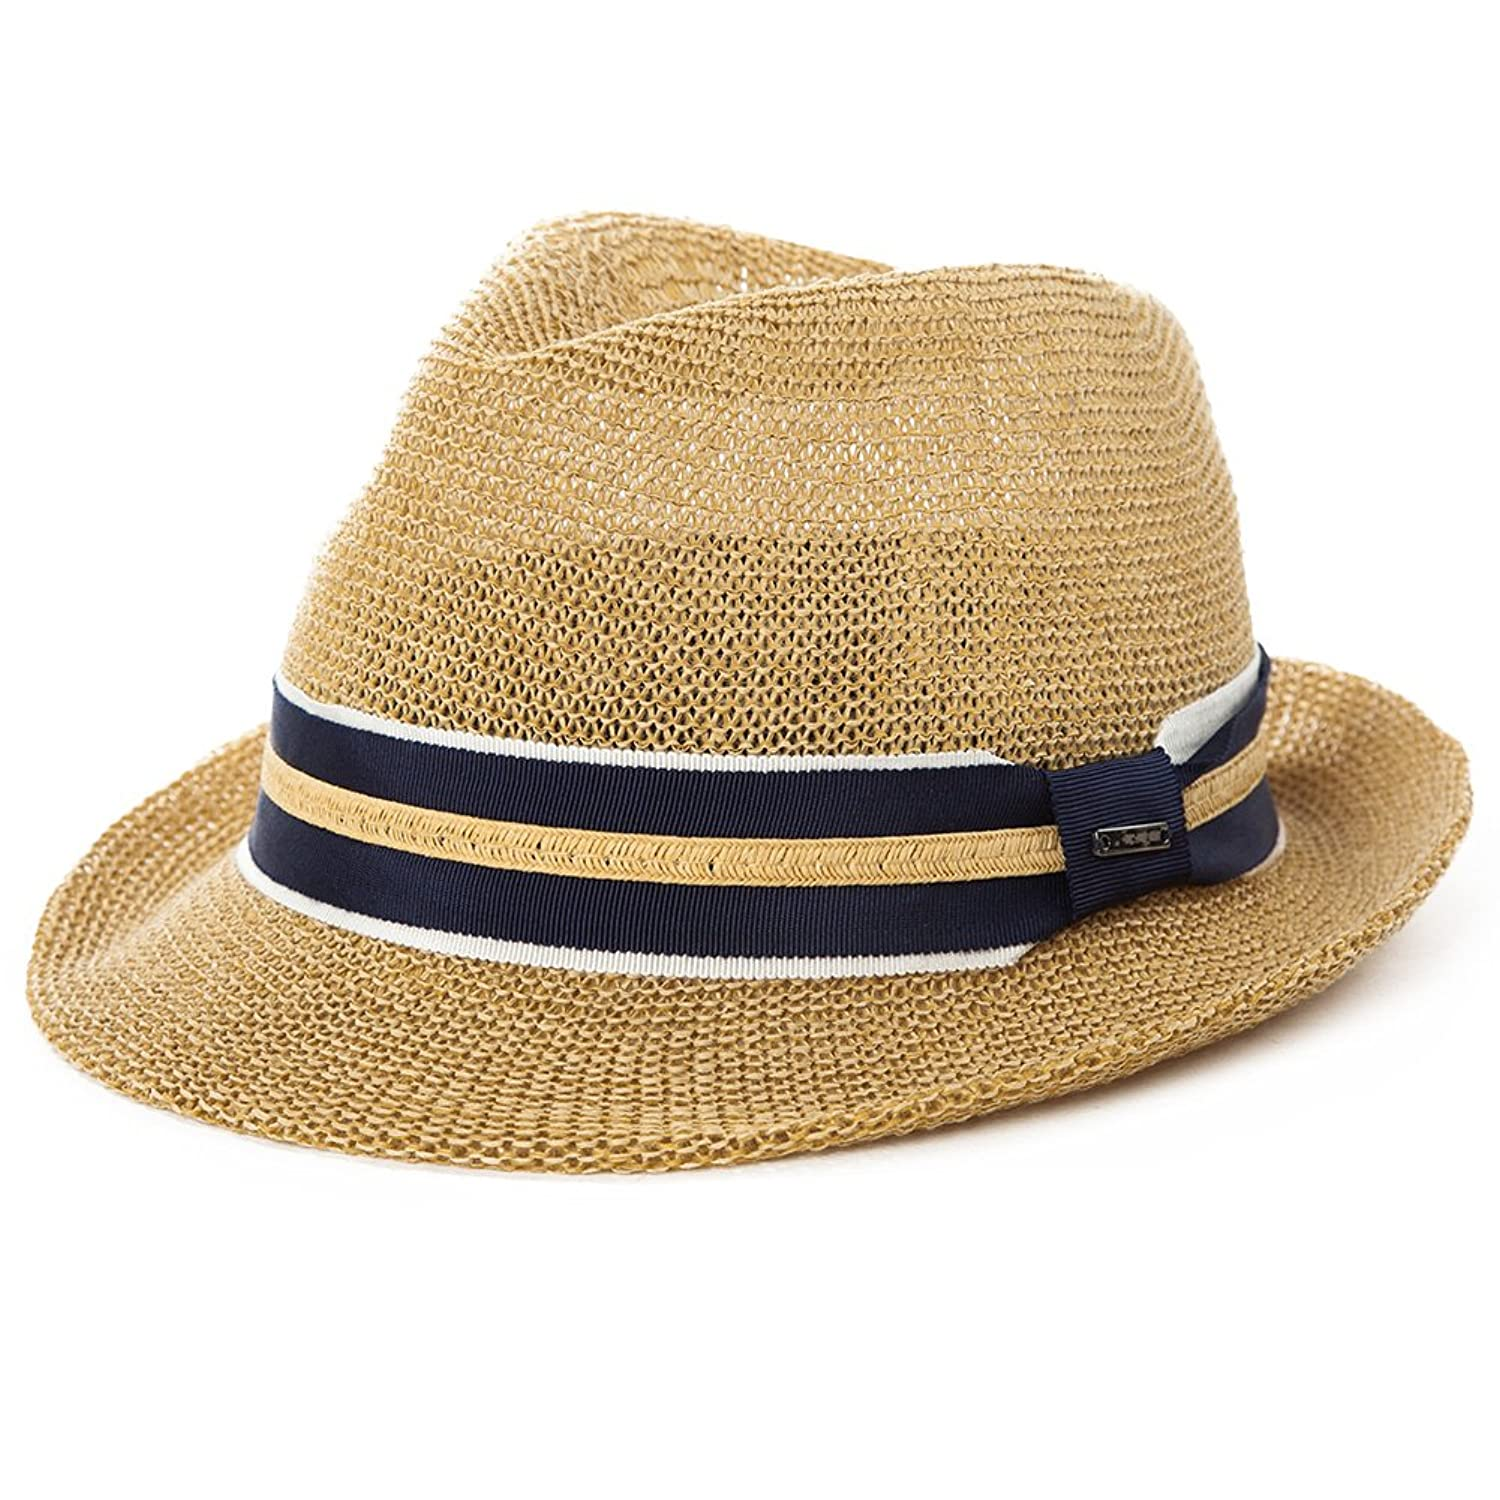 e5bf463652a Timely Hats for Seasonable Men - The GentleManual